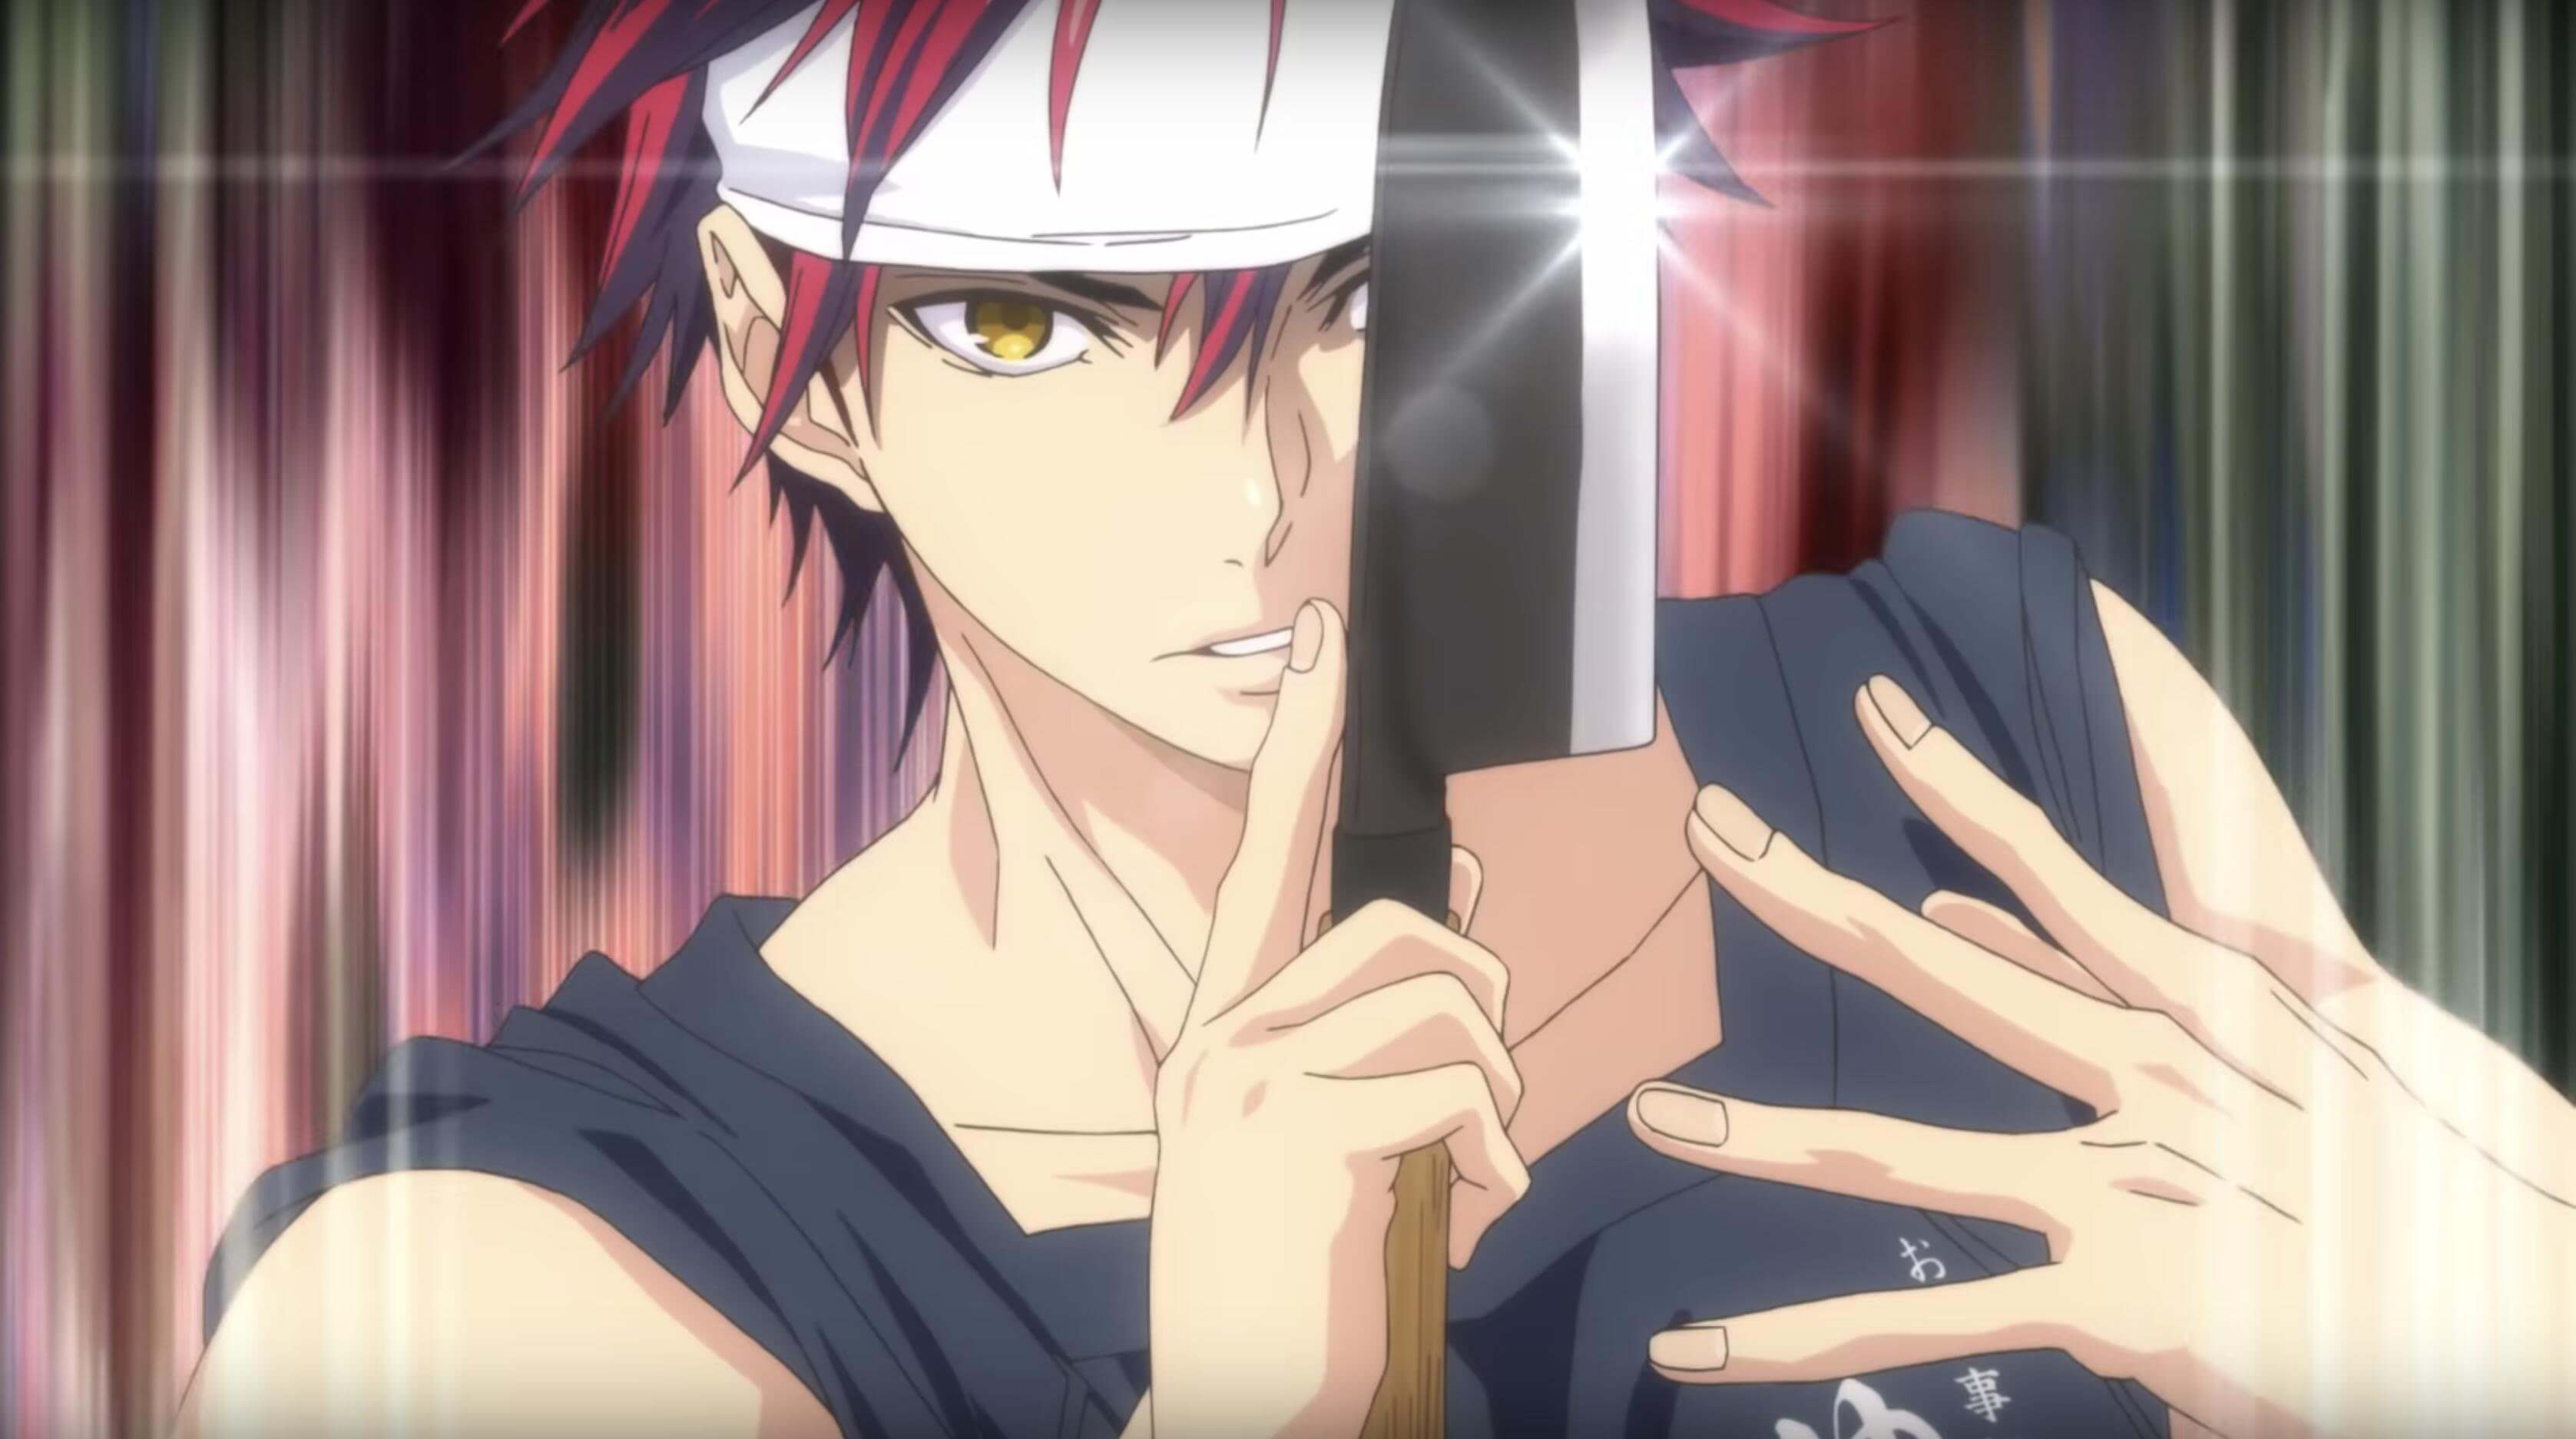 Food Wars! The Fourth Plate (Shokugeki no Souma Season 4)